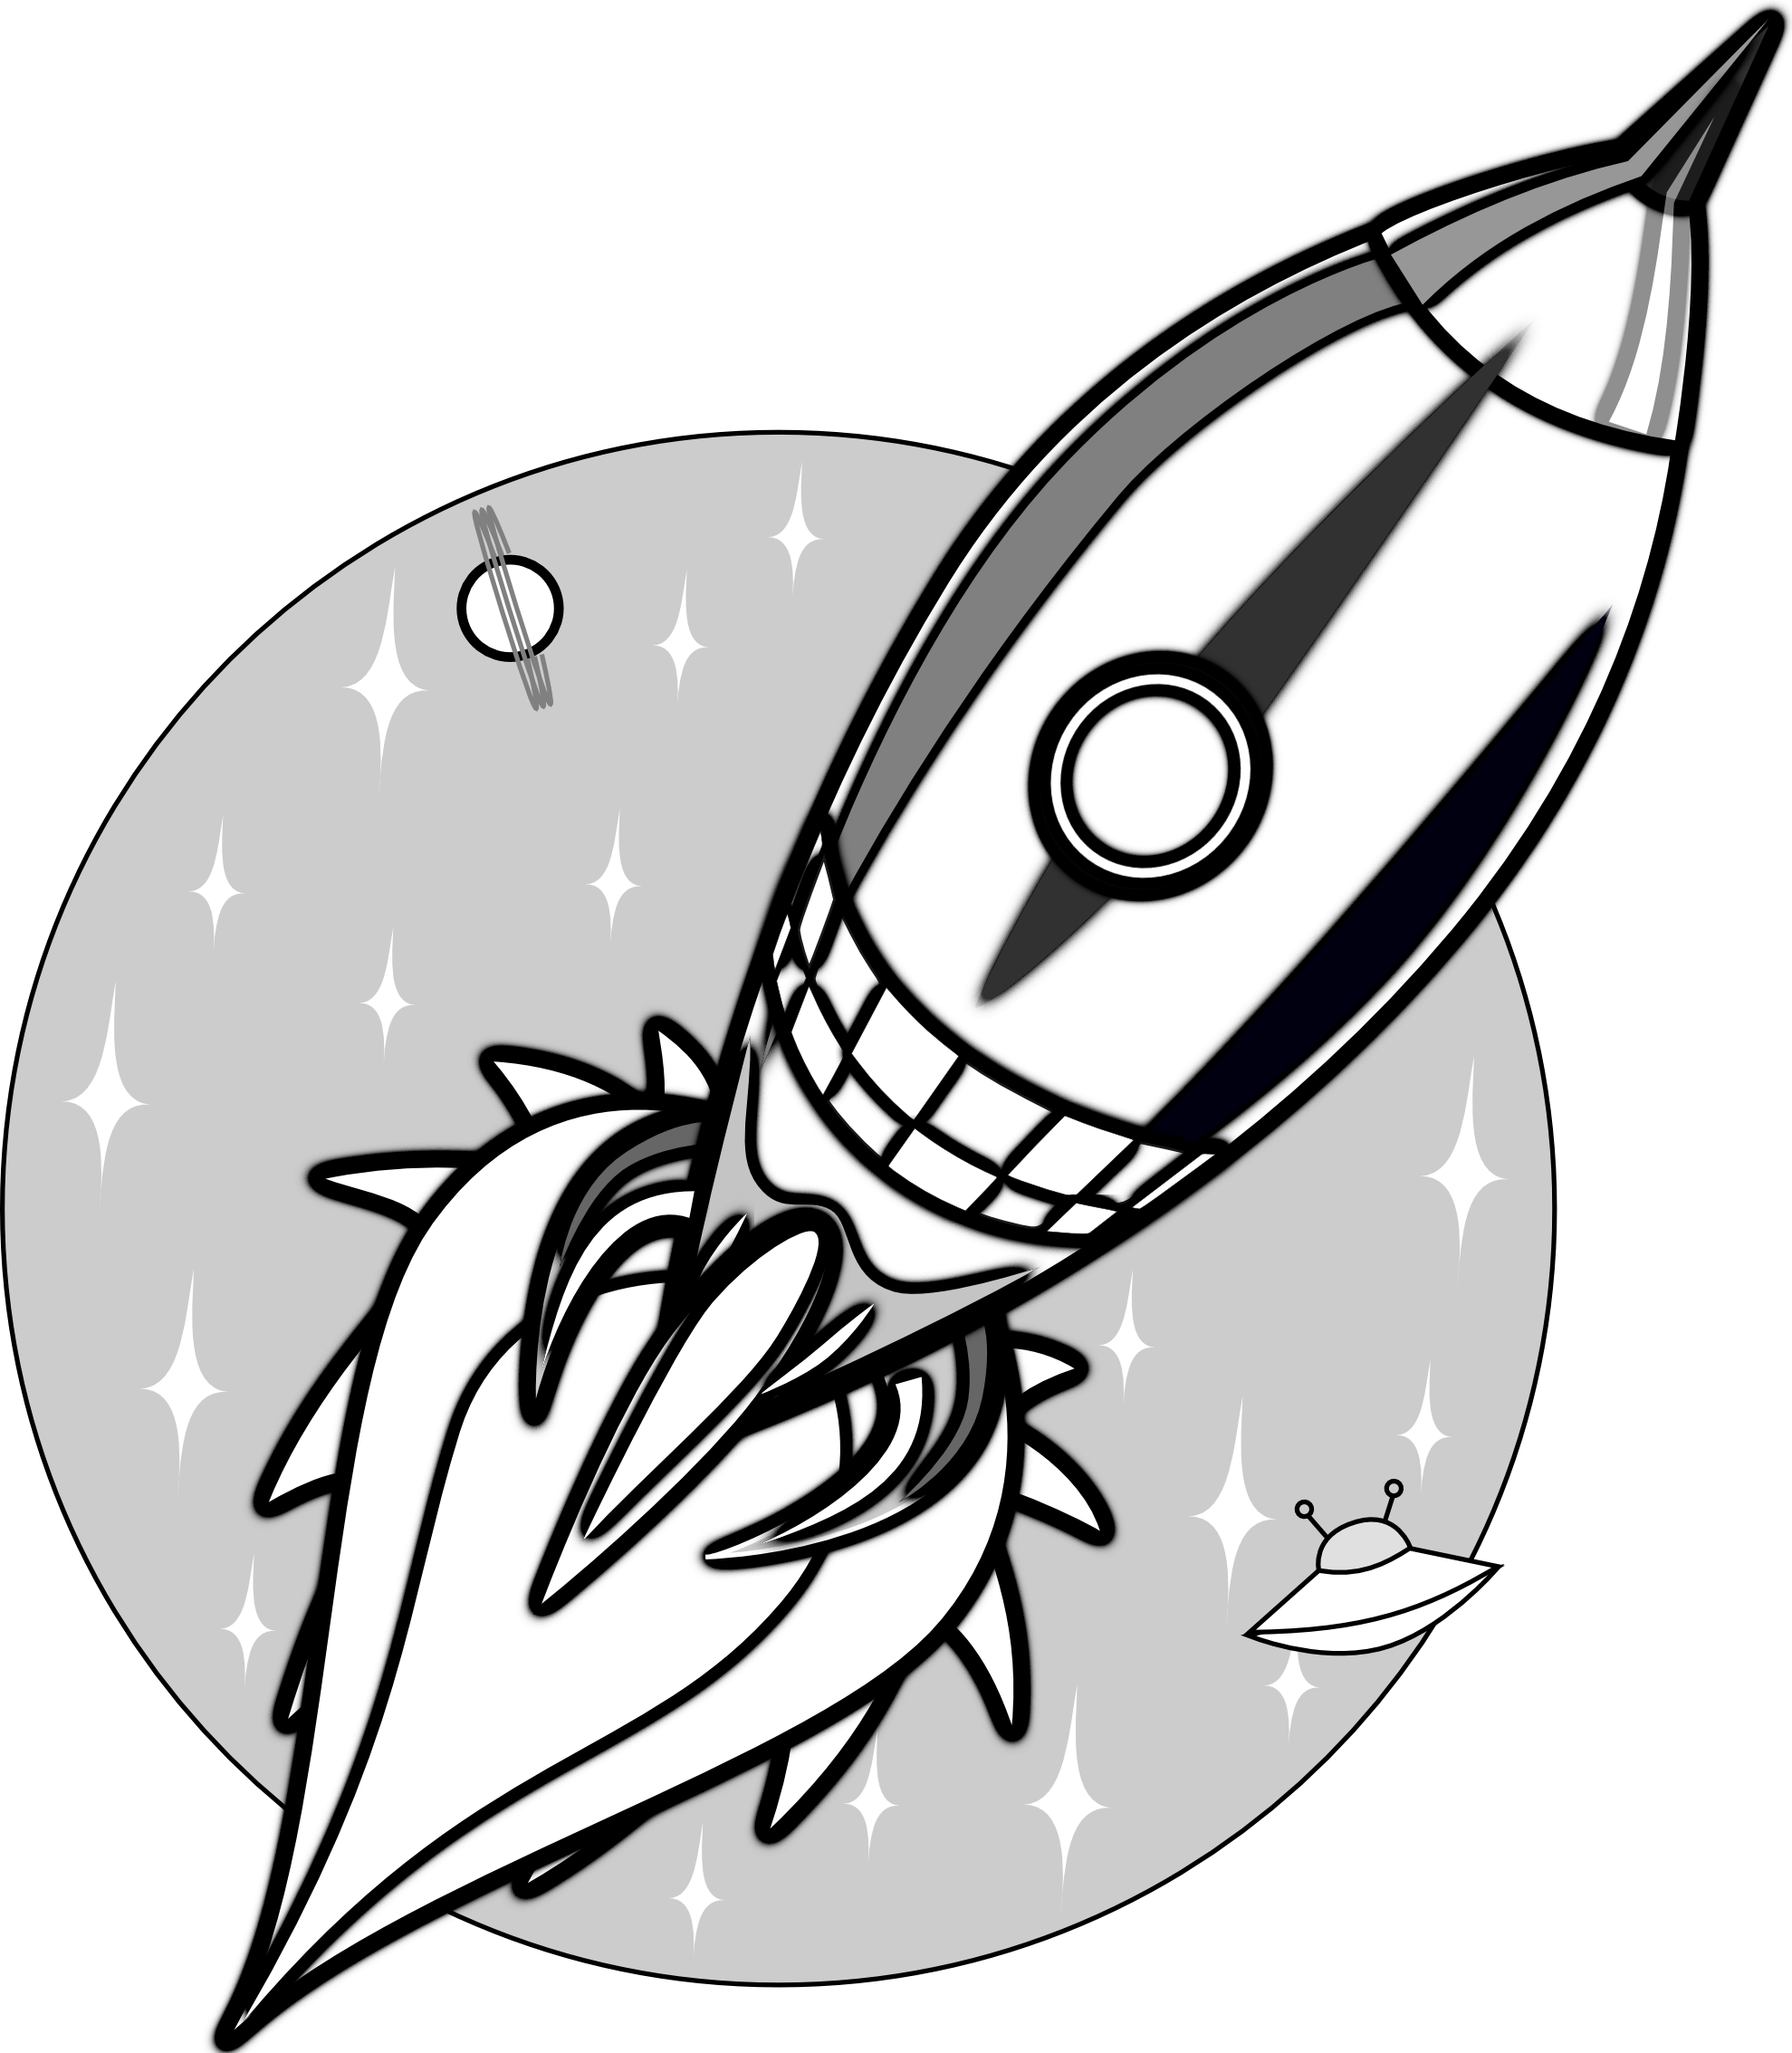 Images for clip art. Clipart rocket black and white